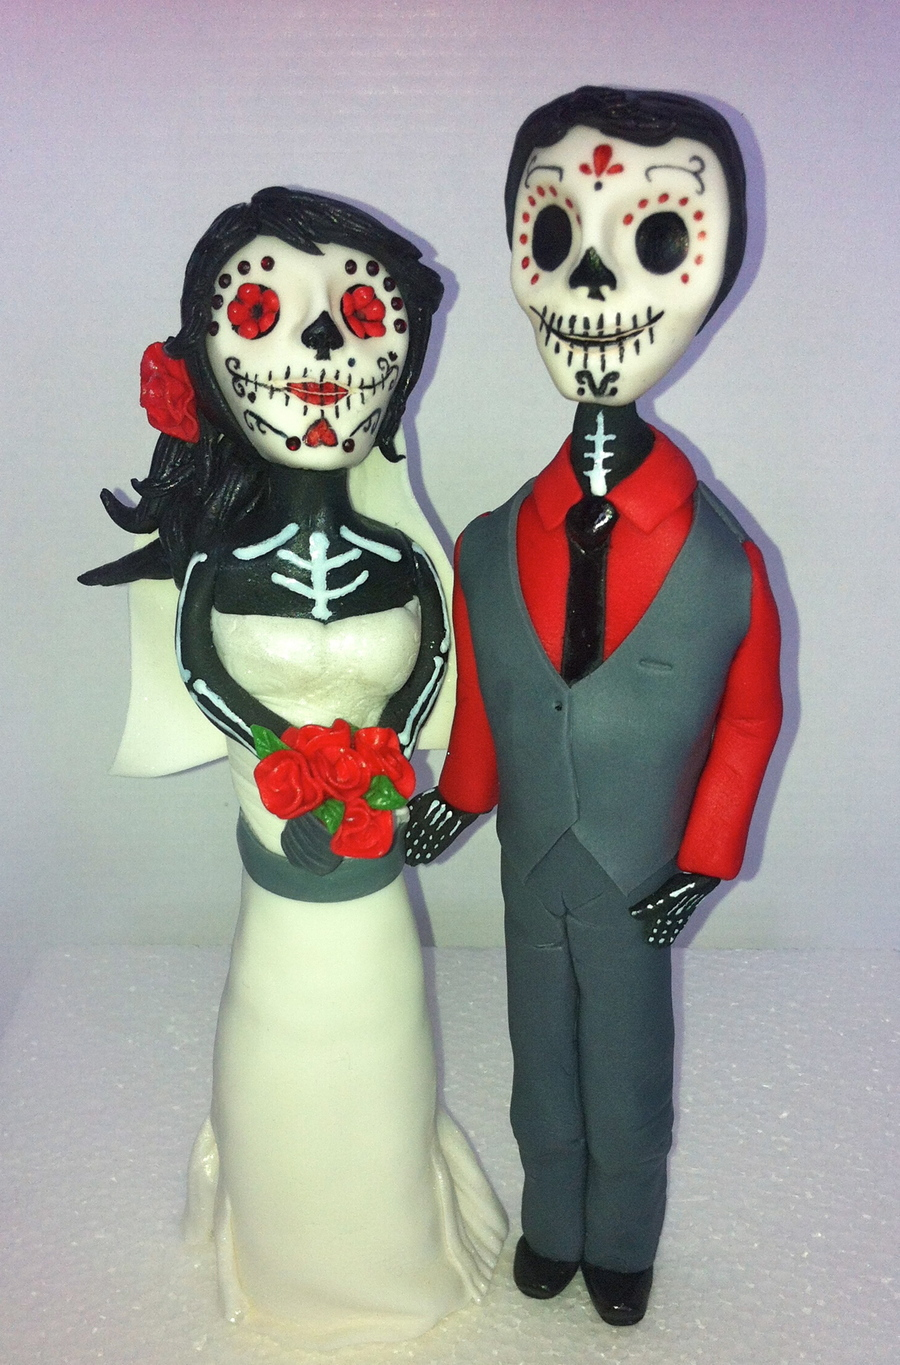 This Is A Day Of The Dead Bride And Groom I Made For A Friends Wedding Cake In Mexico The Figures Are Made From Fondant And Theyre Fac on Cake Central